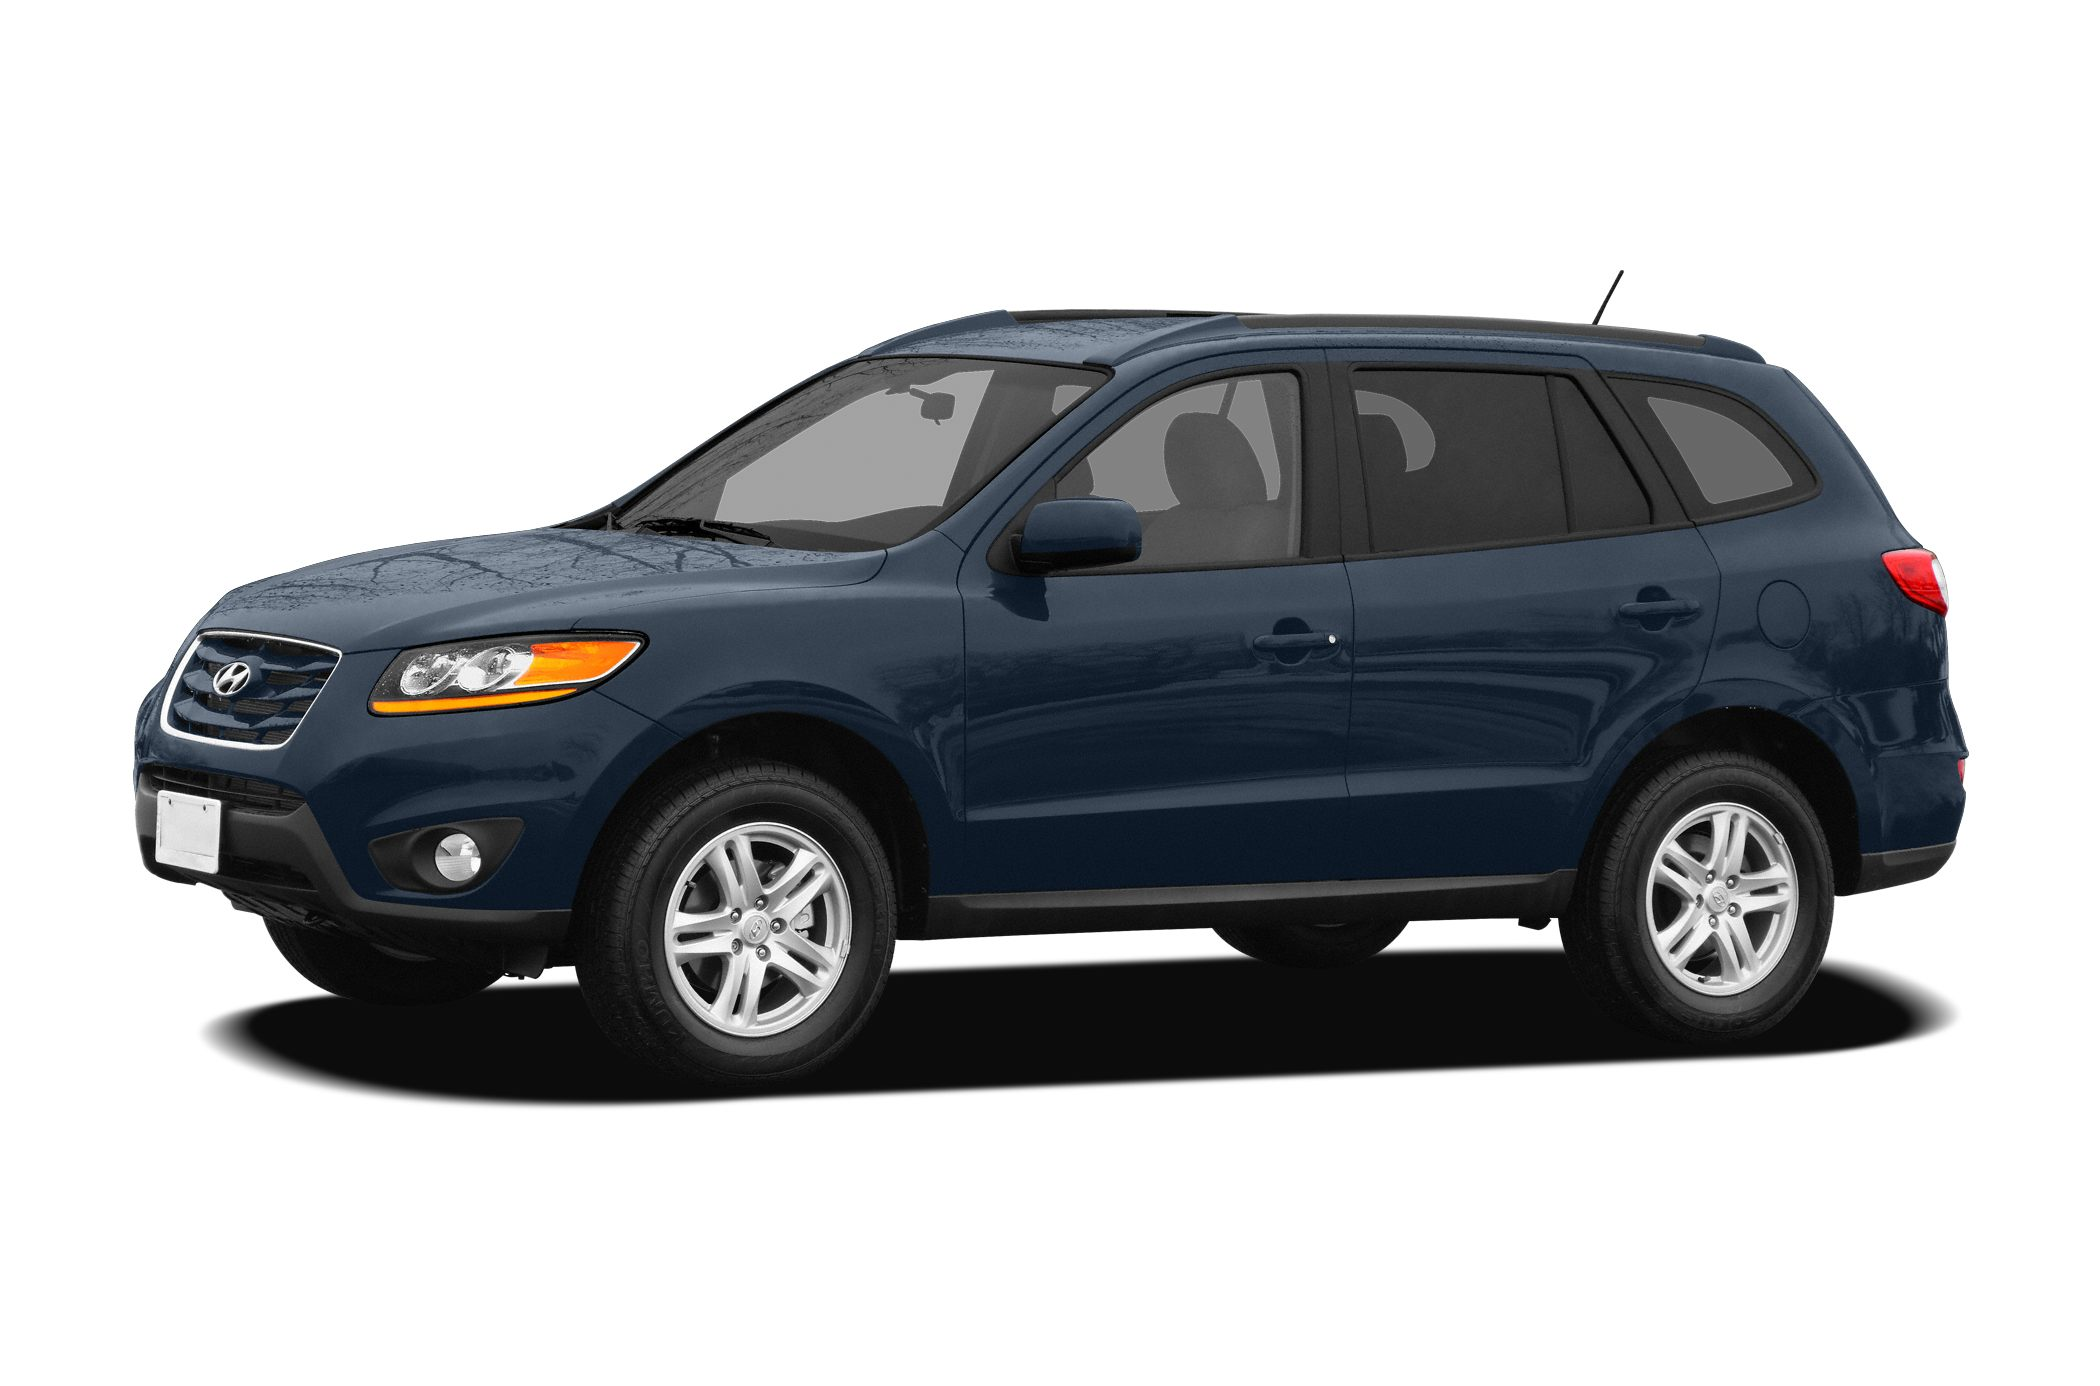 2011 Hyundai Santa Fe